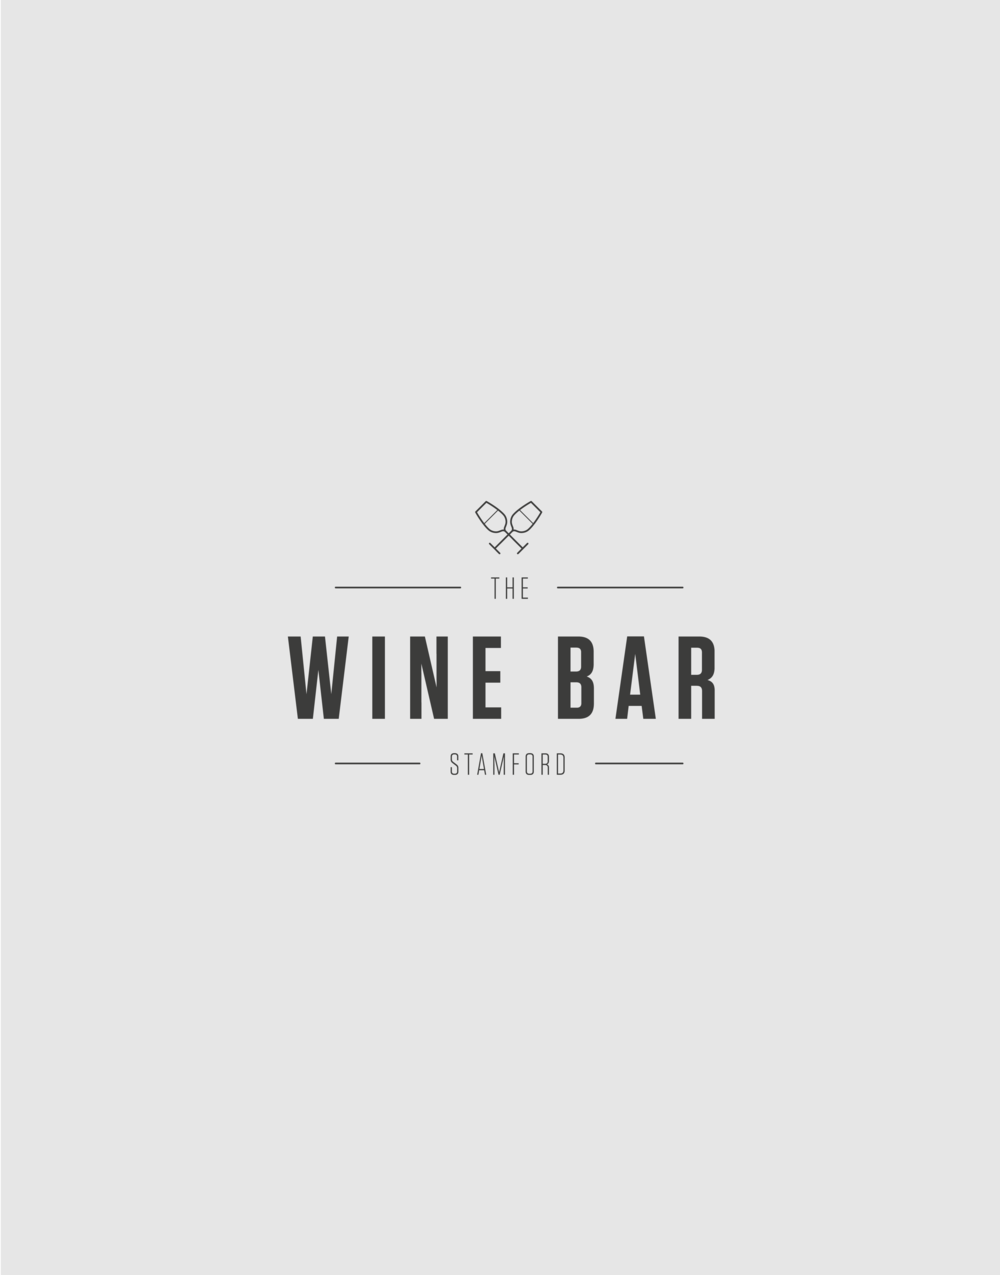 TheWineBar_Cover_01-01.png